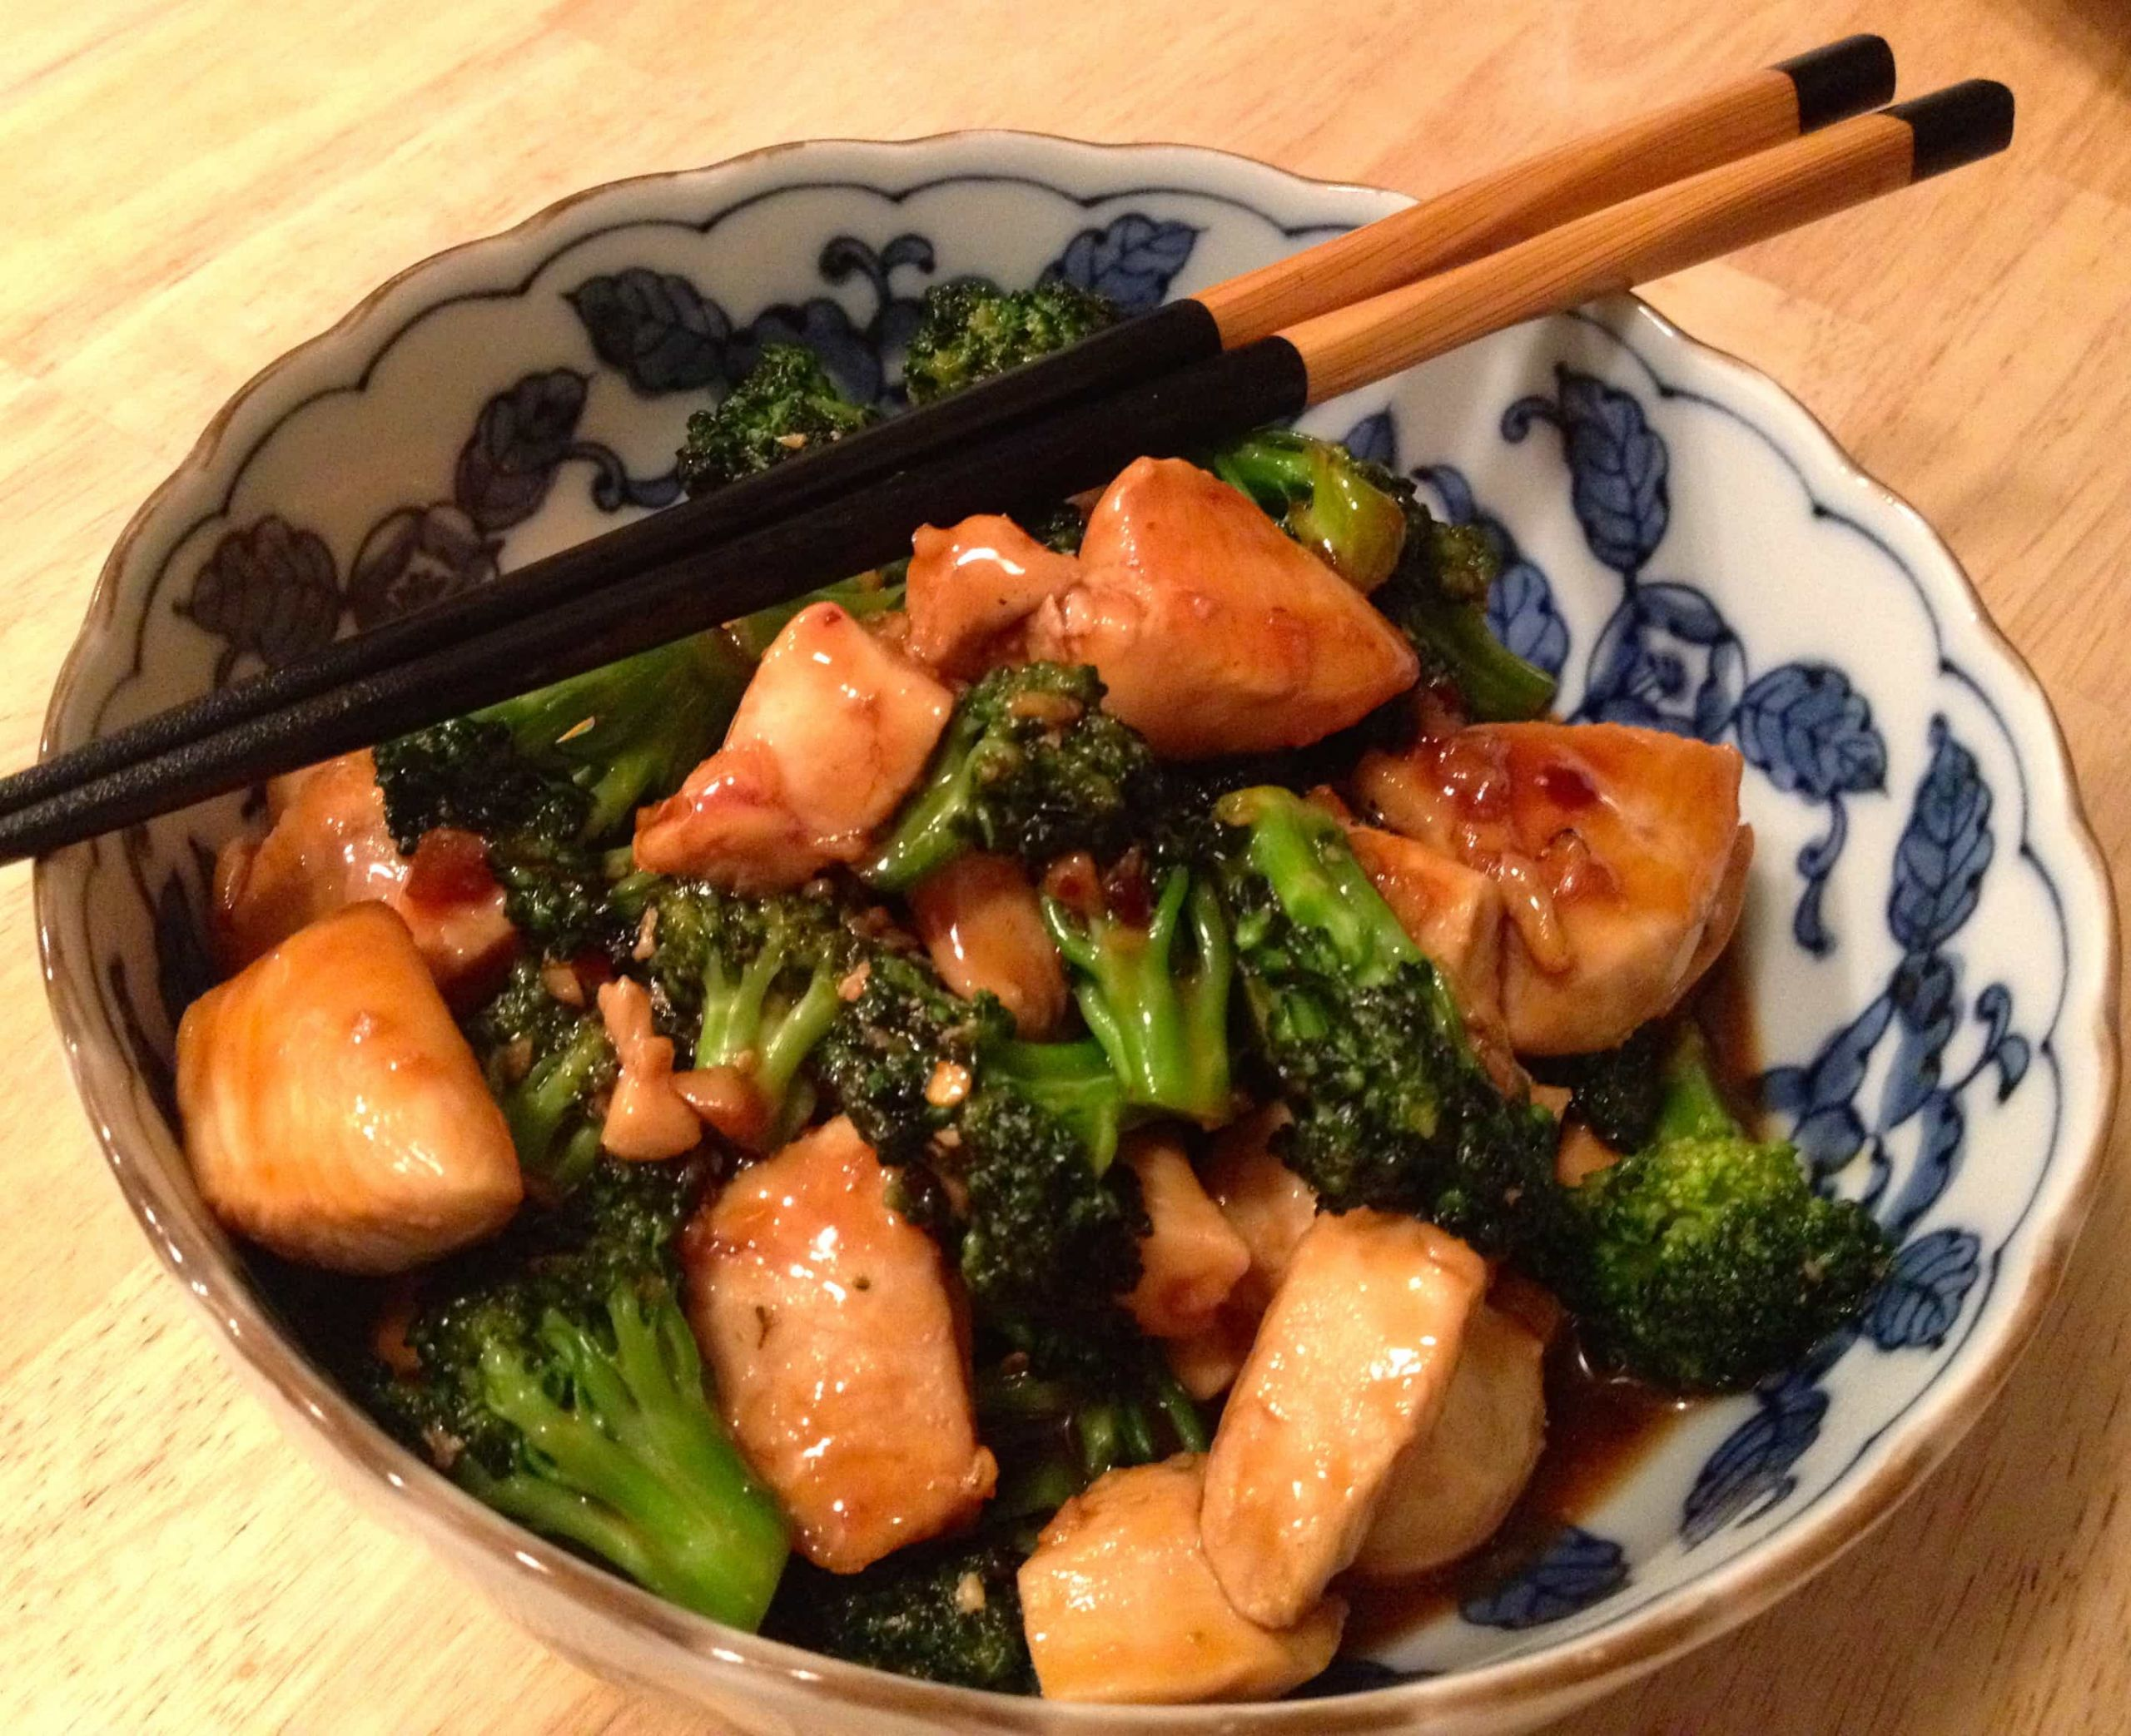 Chinese Chicken And Broccoli Recipes  Paleo Chinese Chicken and Broccoli